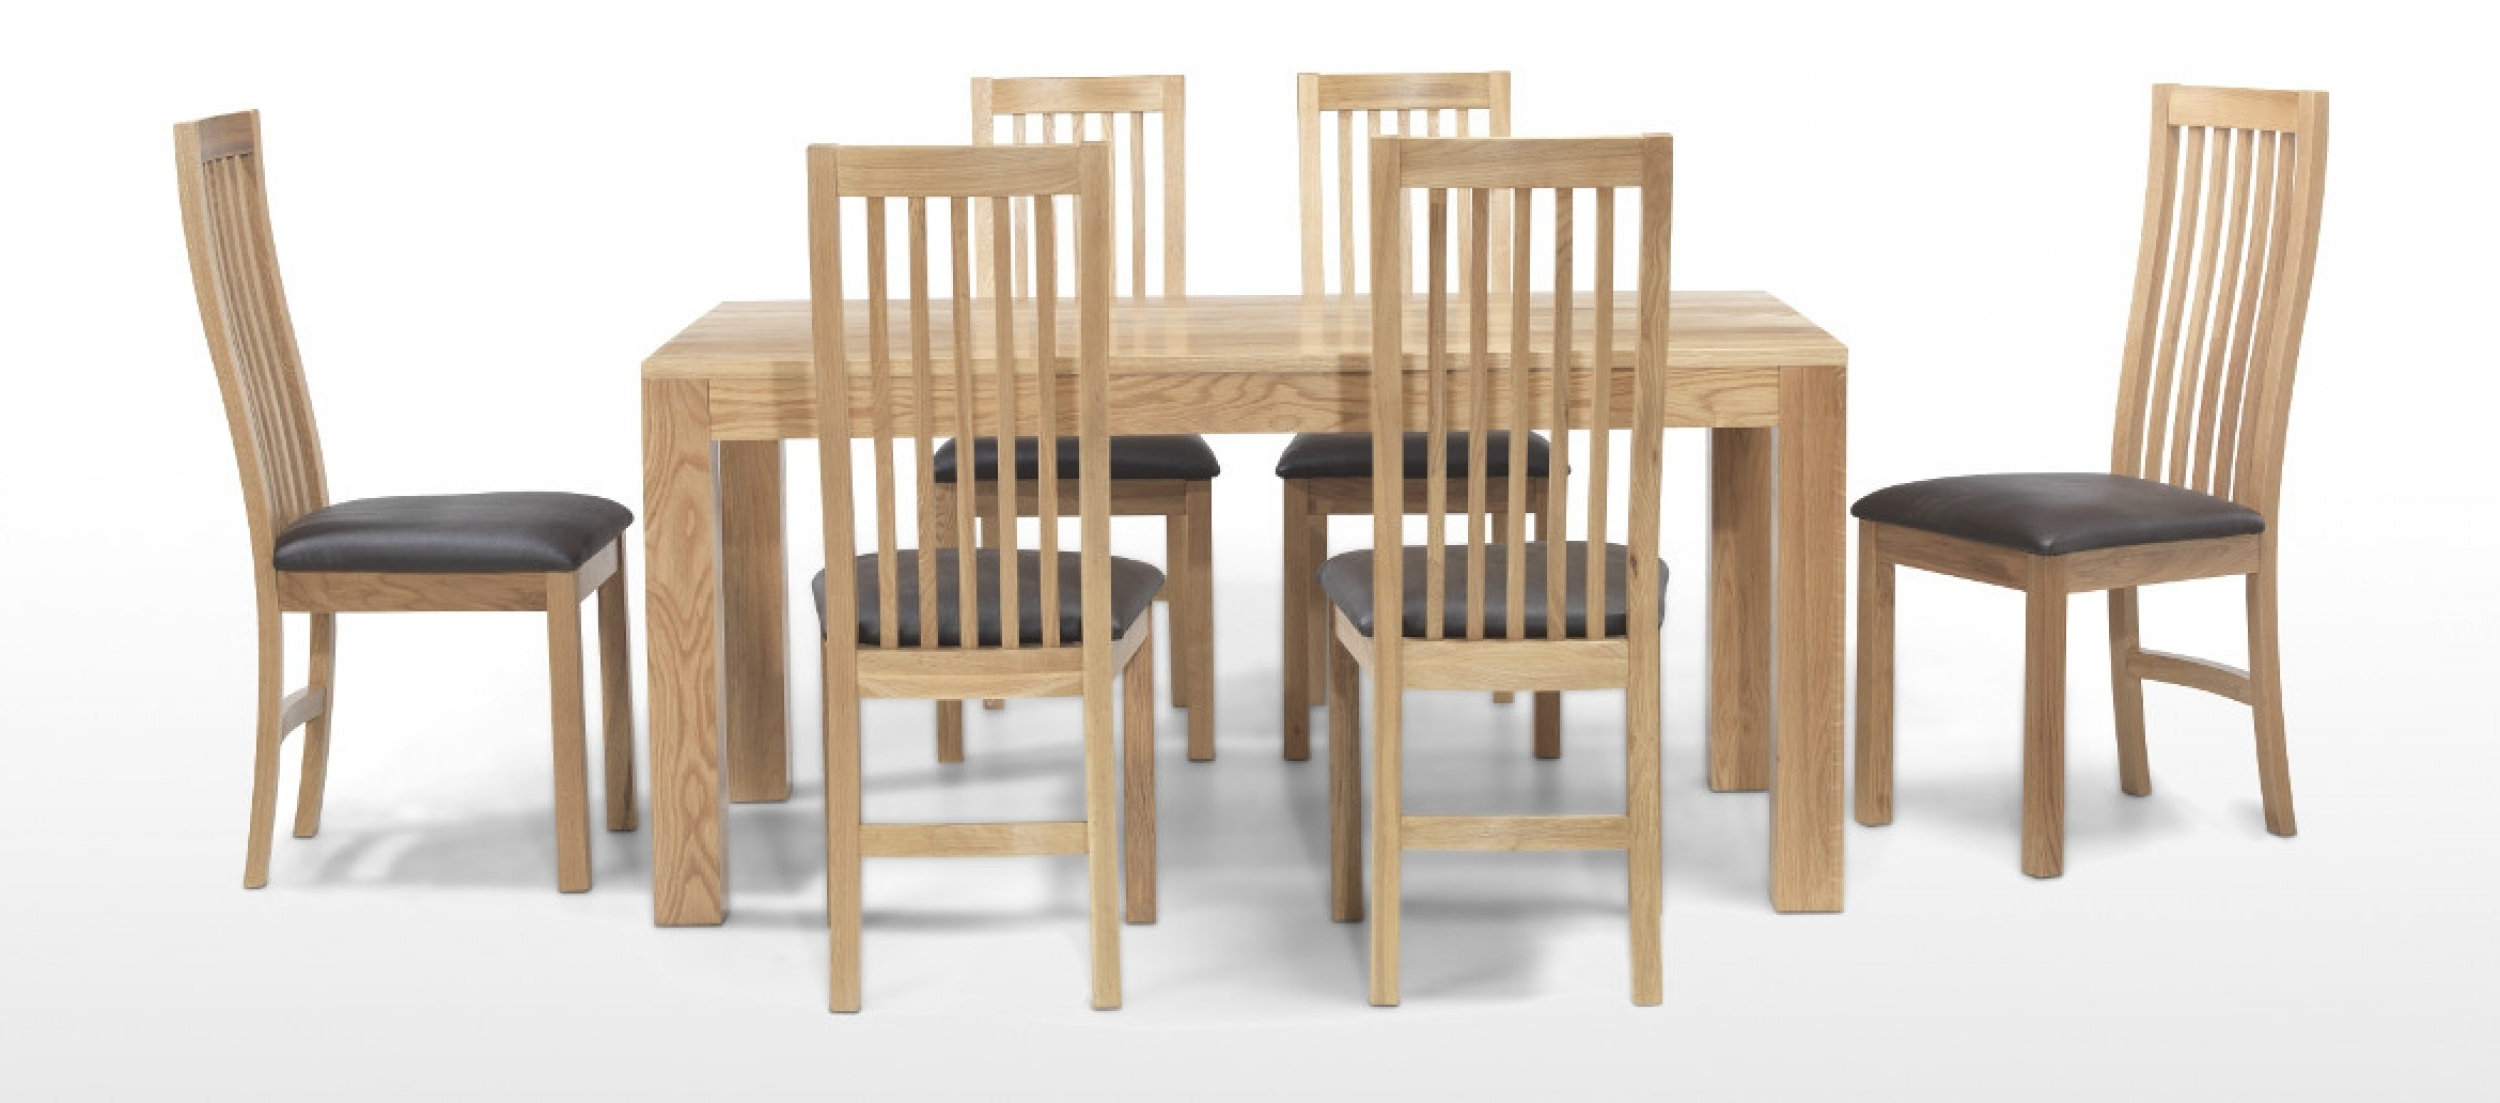 Quercus Living With Favorite Extending Dining Tables With 6 Chairs (View 2 of 25)